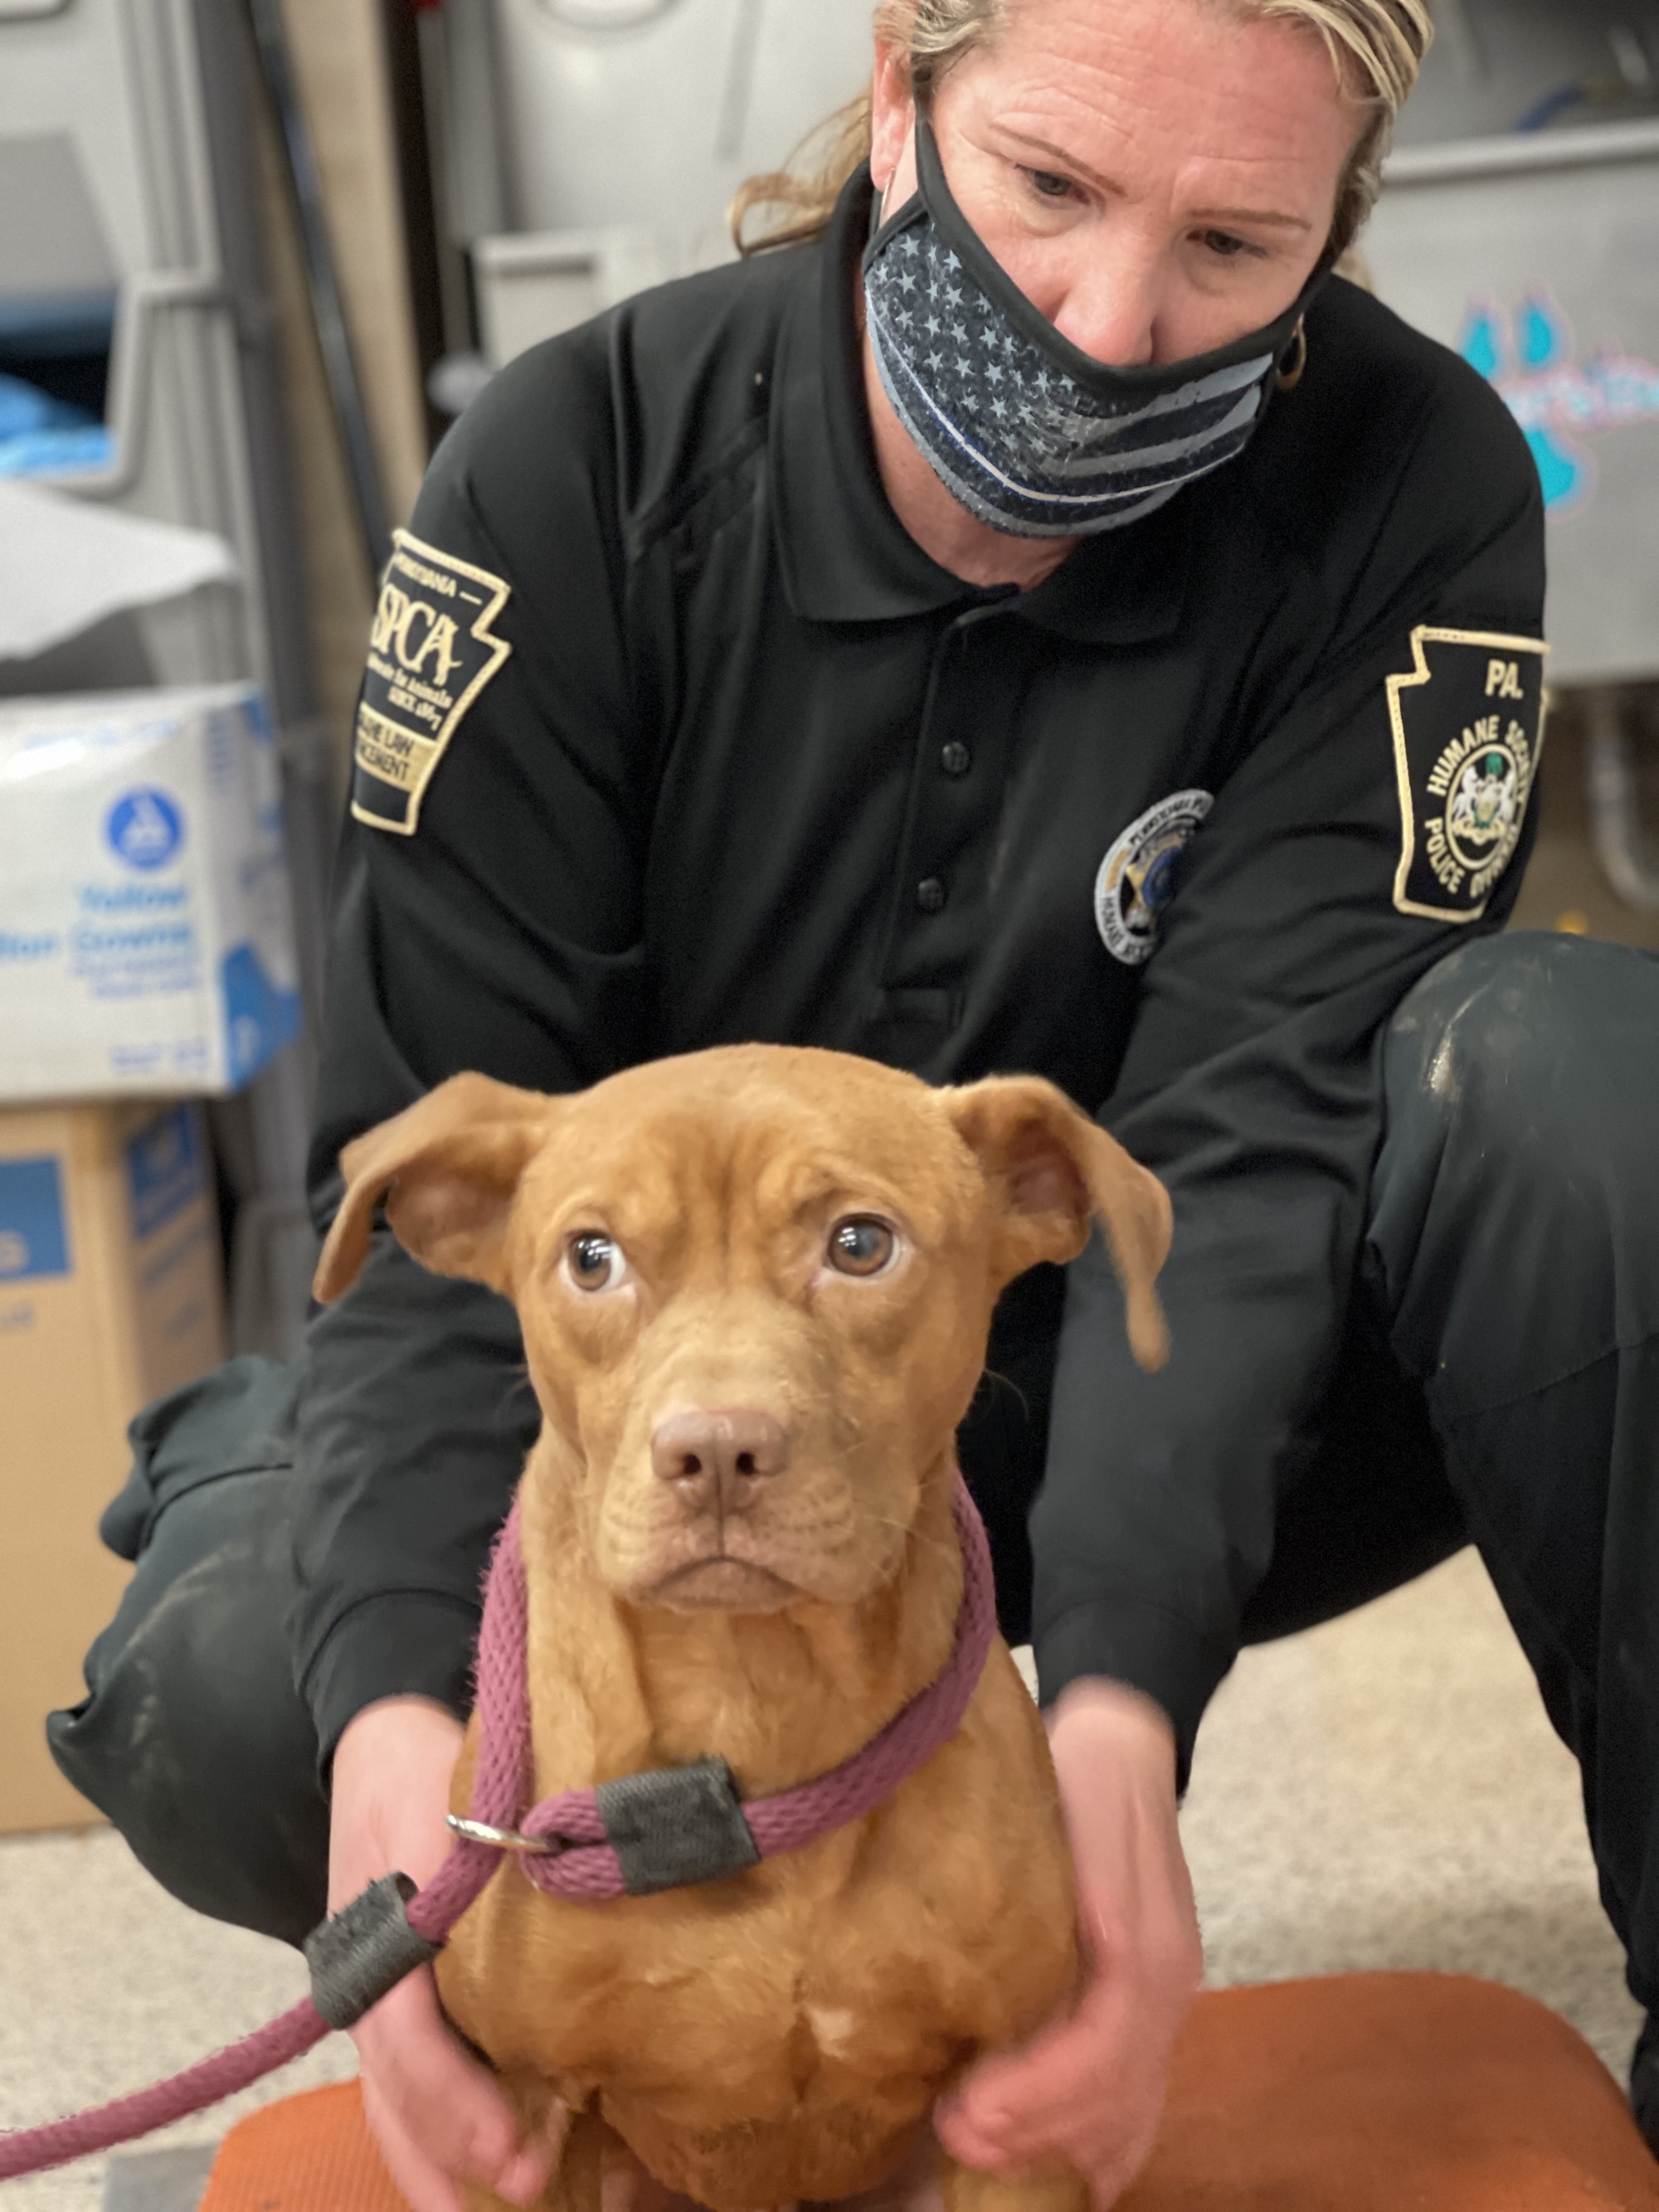 A Humane Law Enforcement Officer sits with a dog rescued from a suspected dogfighting ring.